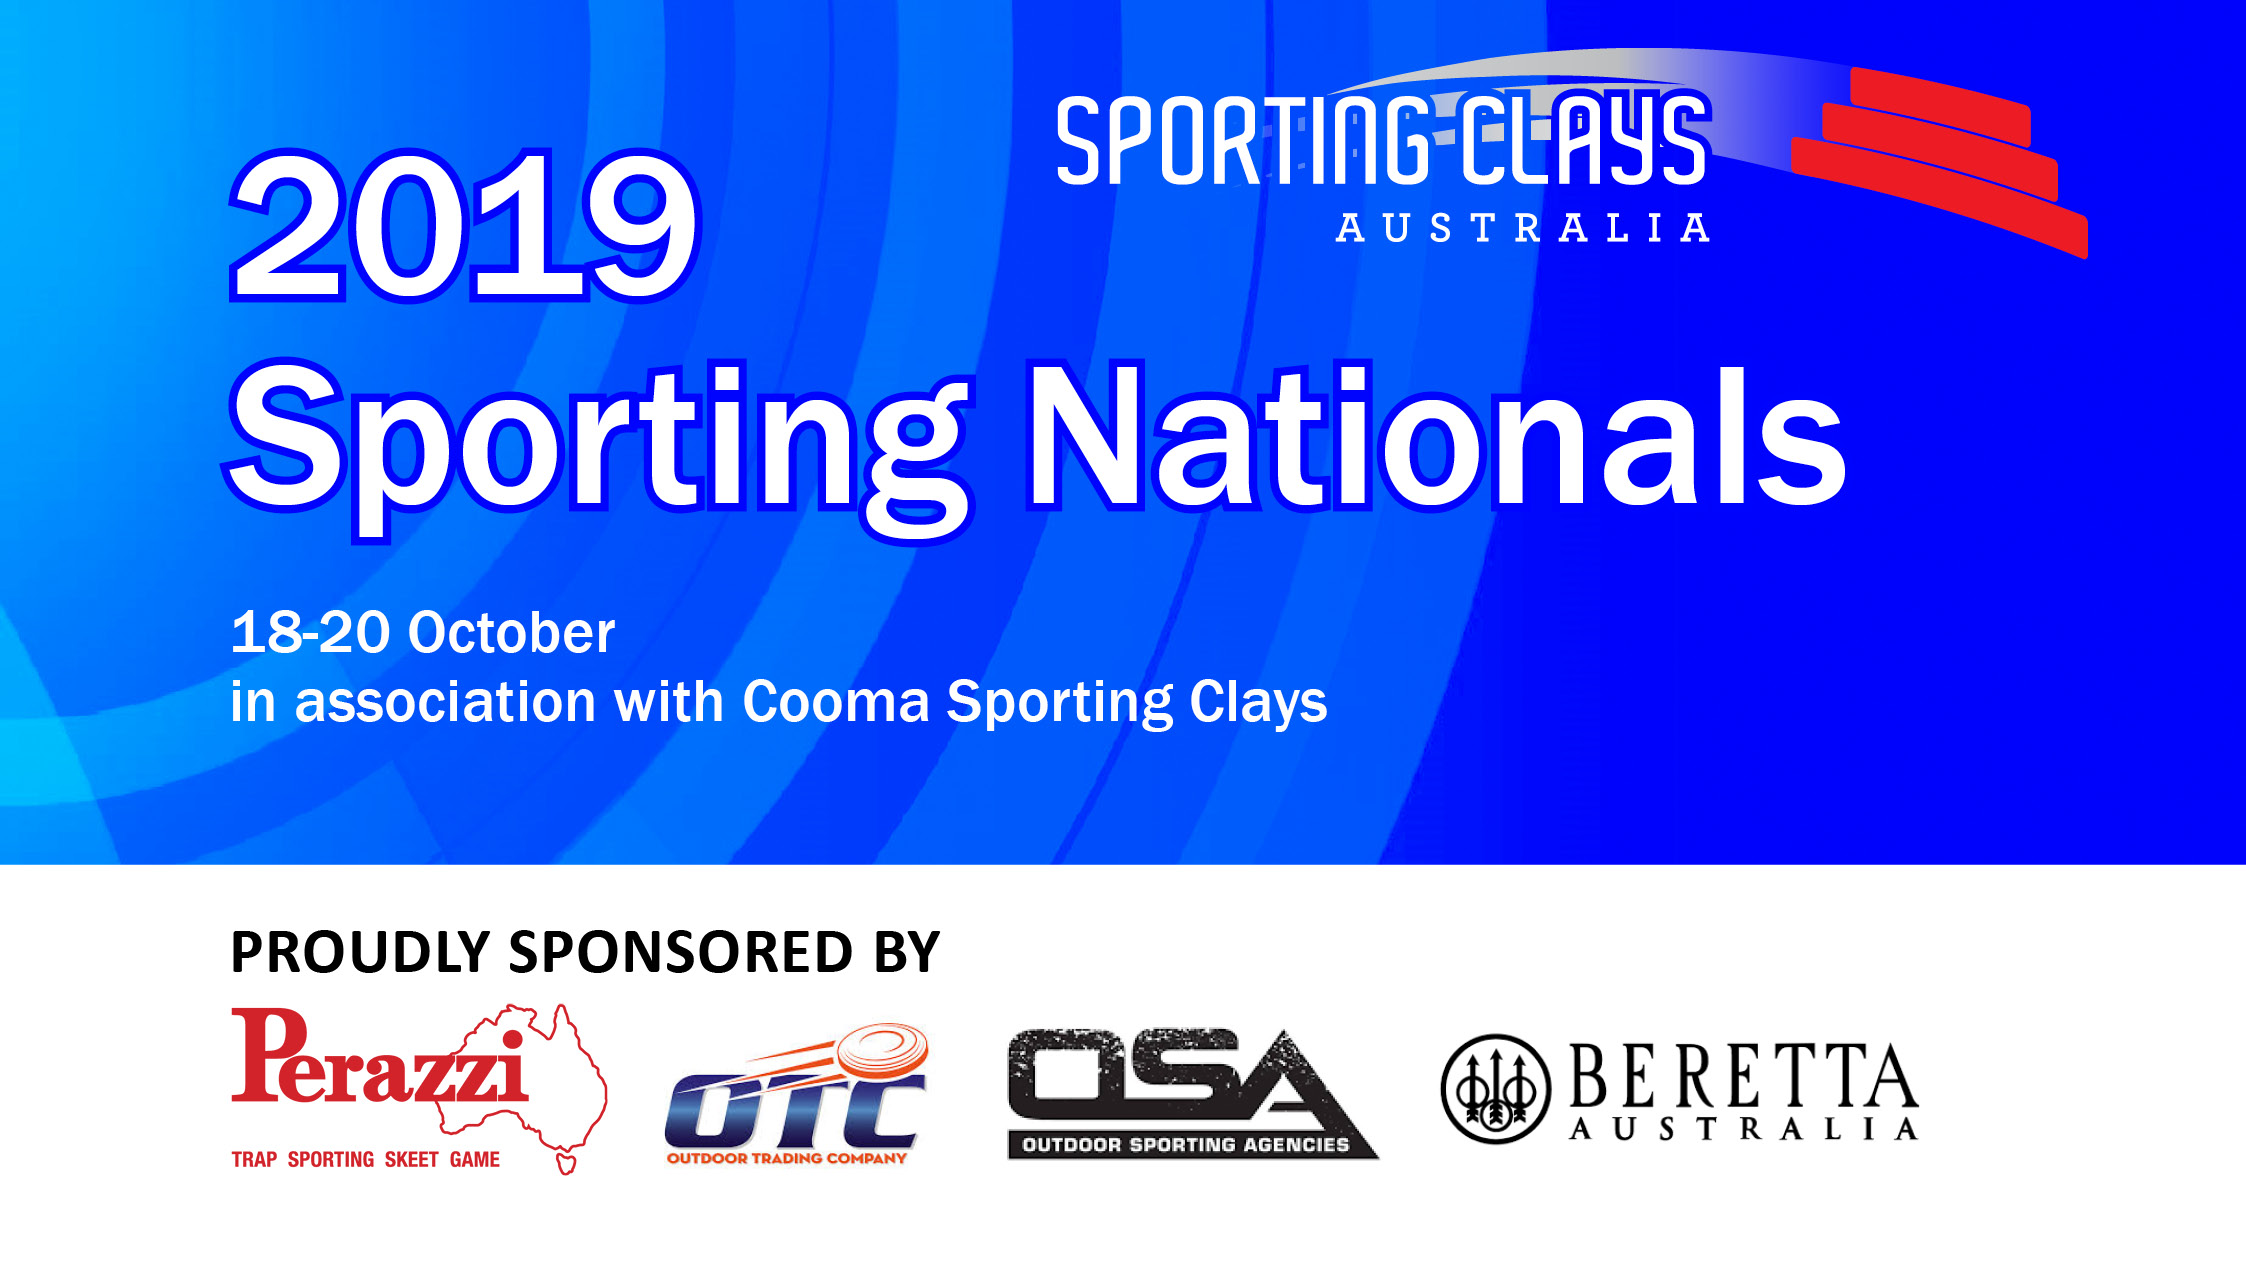 2019 Sporting Nationals 18-20 October in association with Cooma Sporting Clays